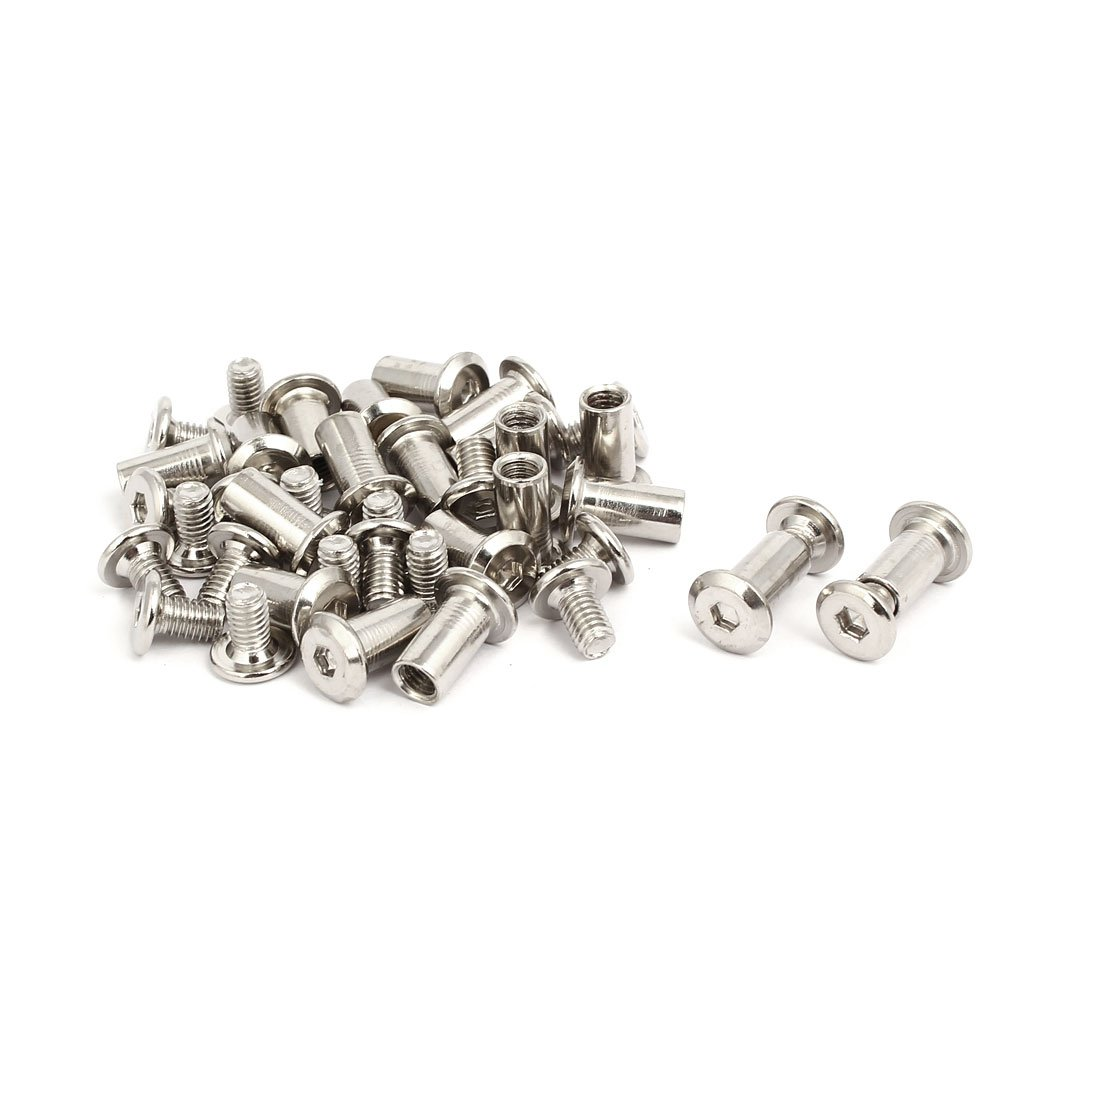 uxcell M6x10mm Male Thread Cupboard Hex Socket Head Screw Post Silver Tone 20pcs